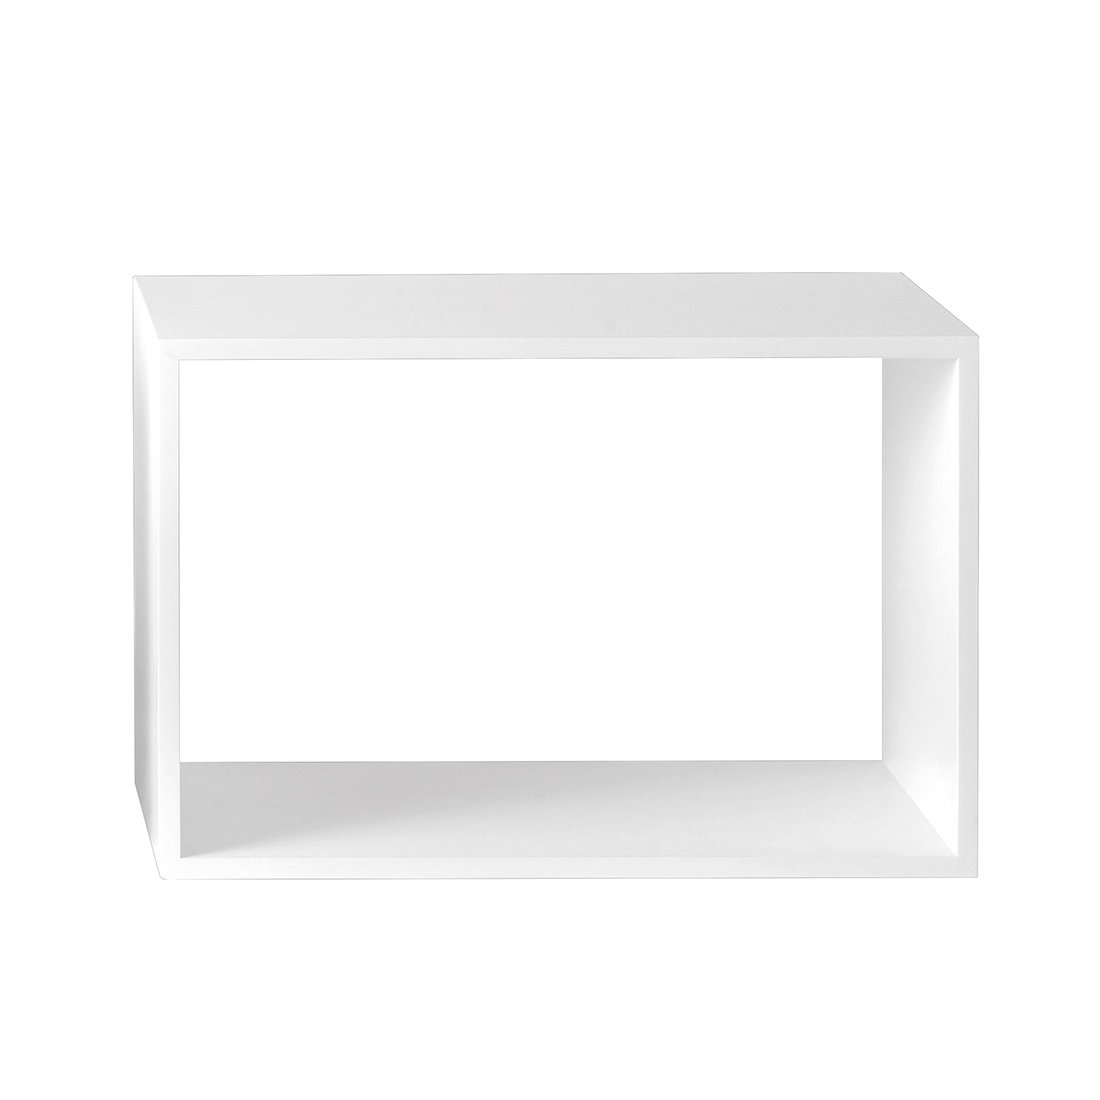 Muuto Stacked 2.0 Modules Large Wit/Open